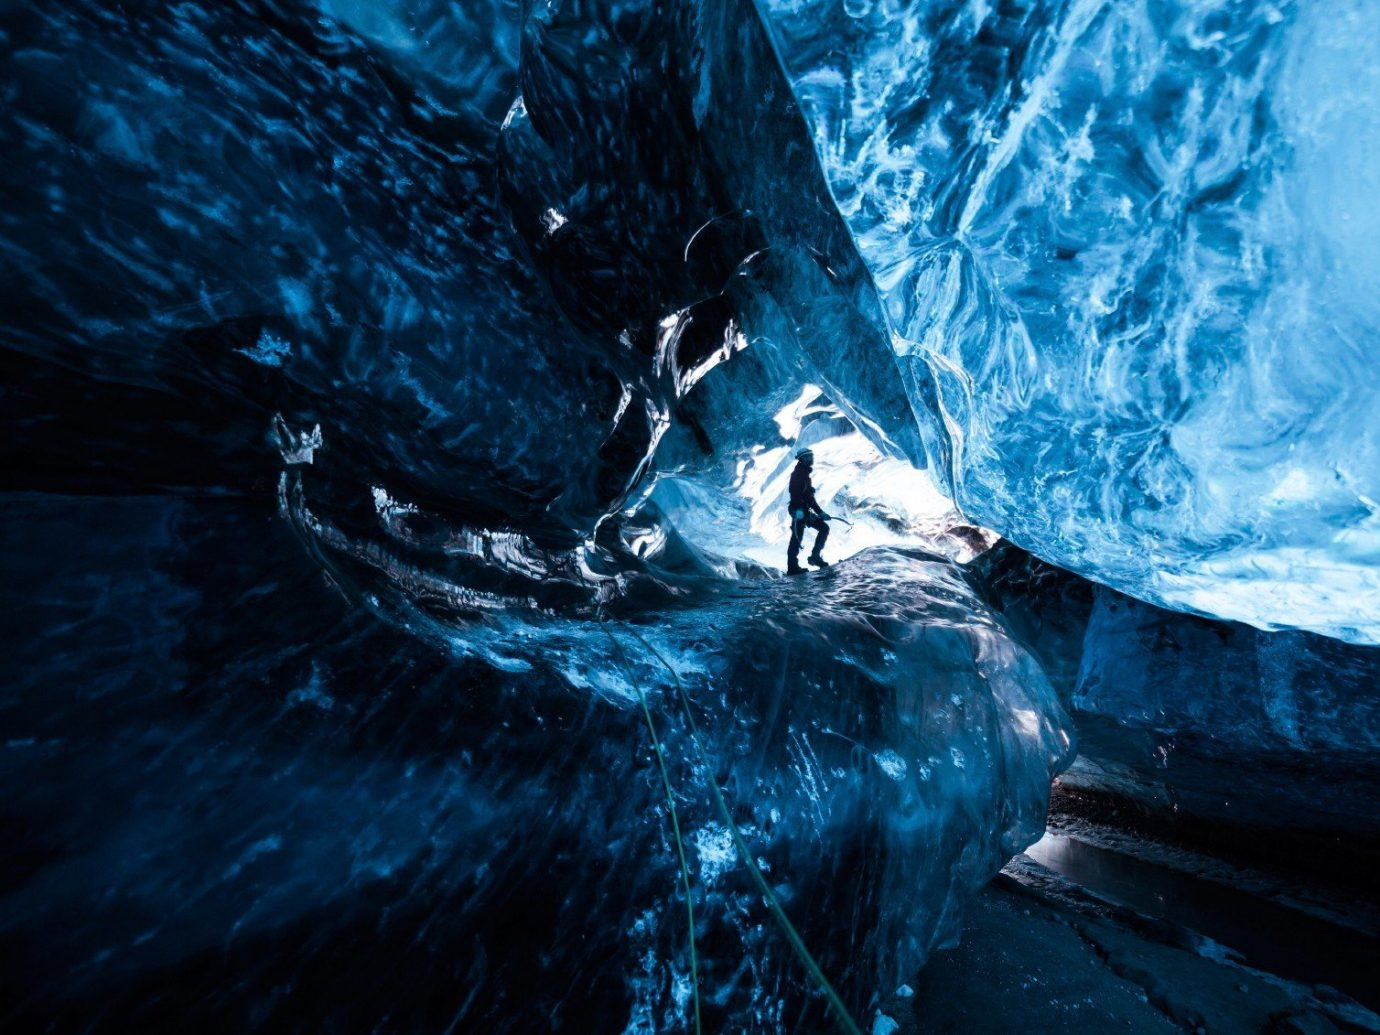 Offbeat Trip Ideas ice cave blue landform geographical feature cave ice extreme sport glacial landform screenshot formation sea cave